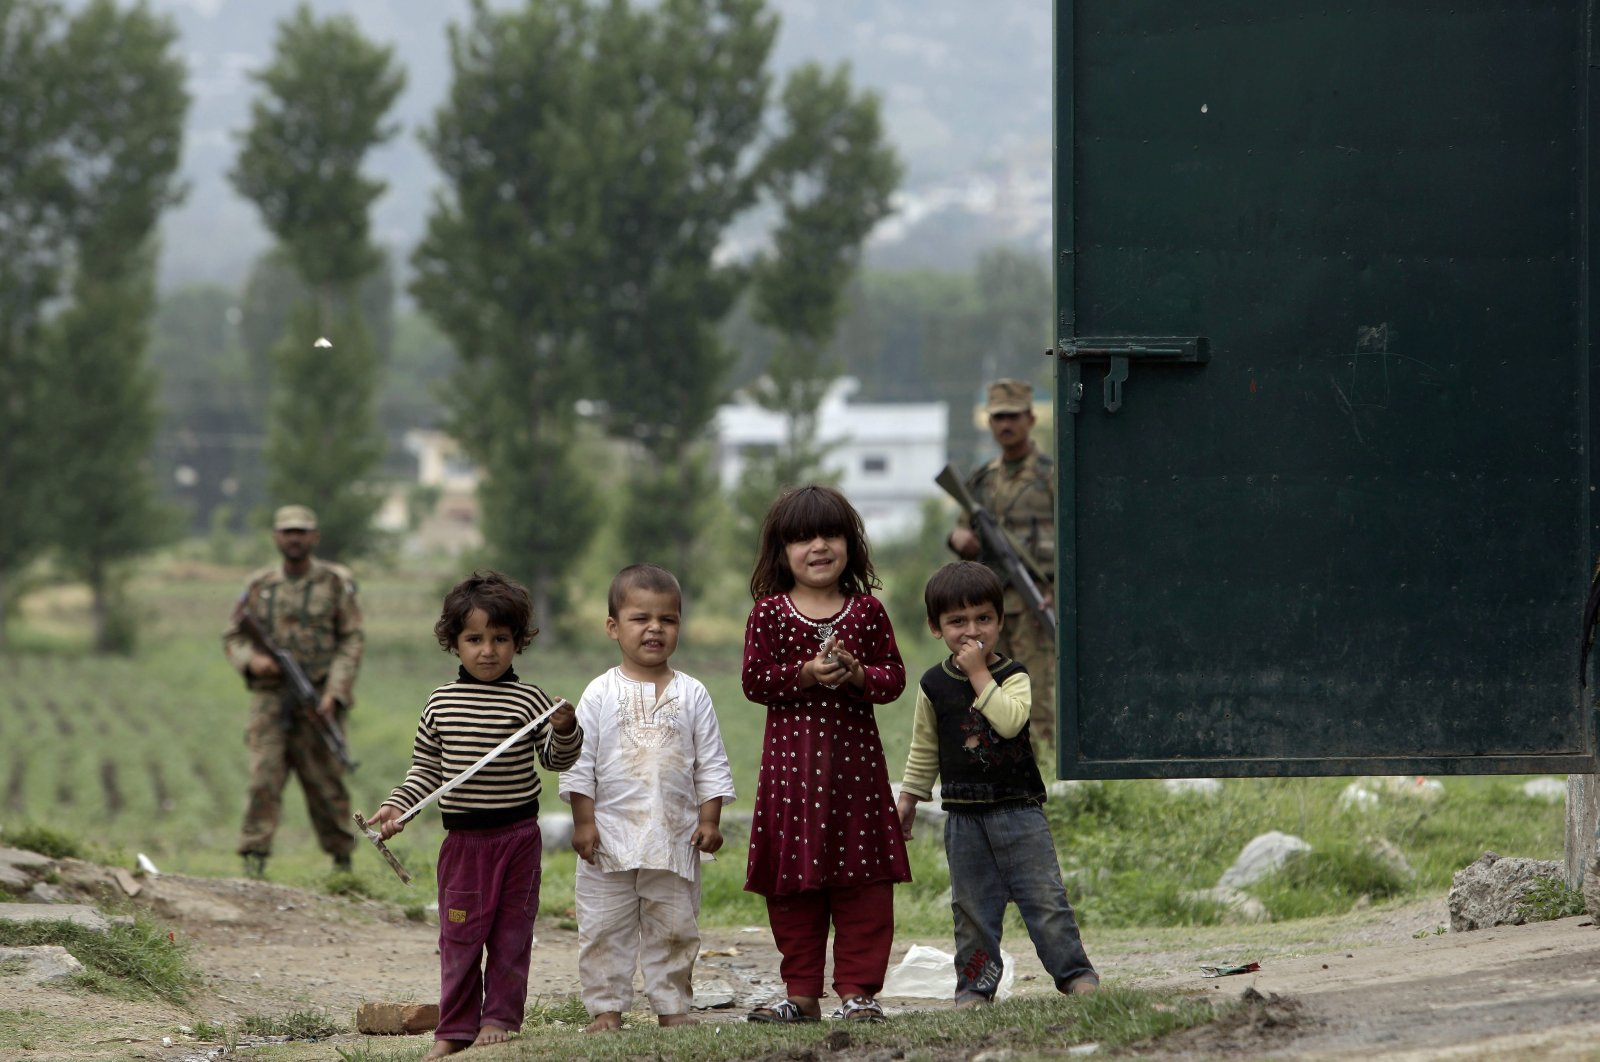 Children look on while playing as Pakistani army soldiers stand guard around the house where al-Qaida leader Osama bin Laden was caught and killed in Abbottabad, Pakistan, May 6, 2011. (AP Photo)